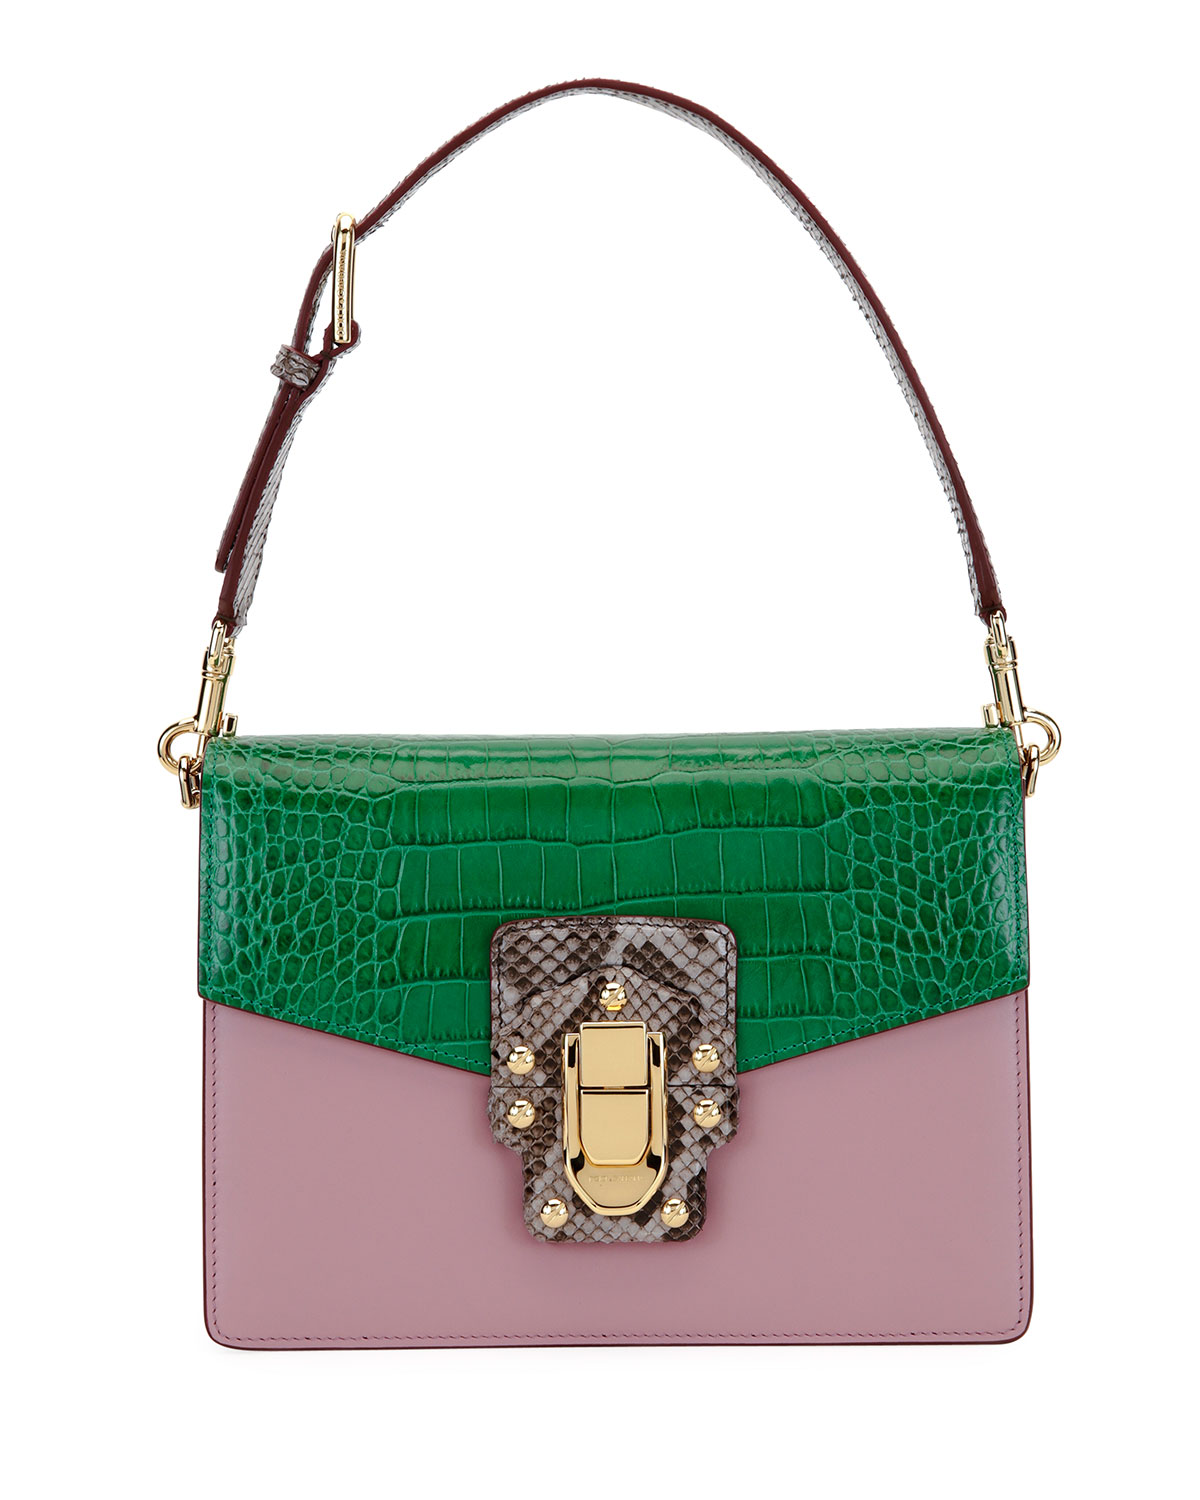 Lucia Colorblock Leather Crocodile Gusset Bag With Python Pink Green